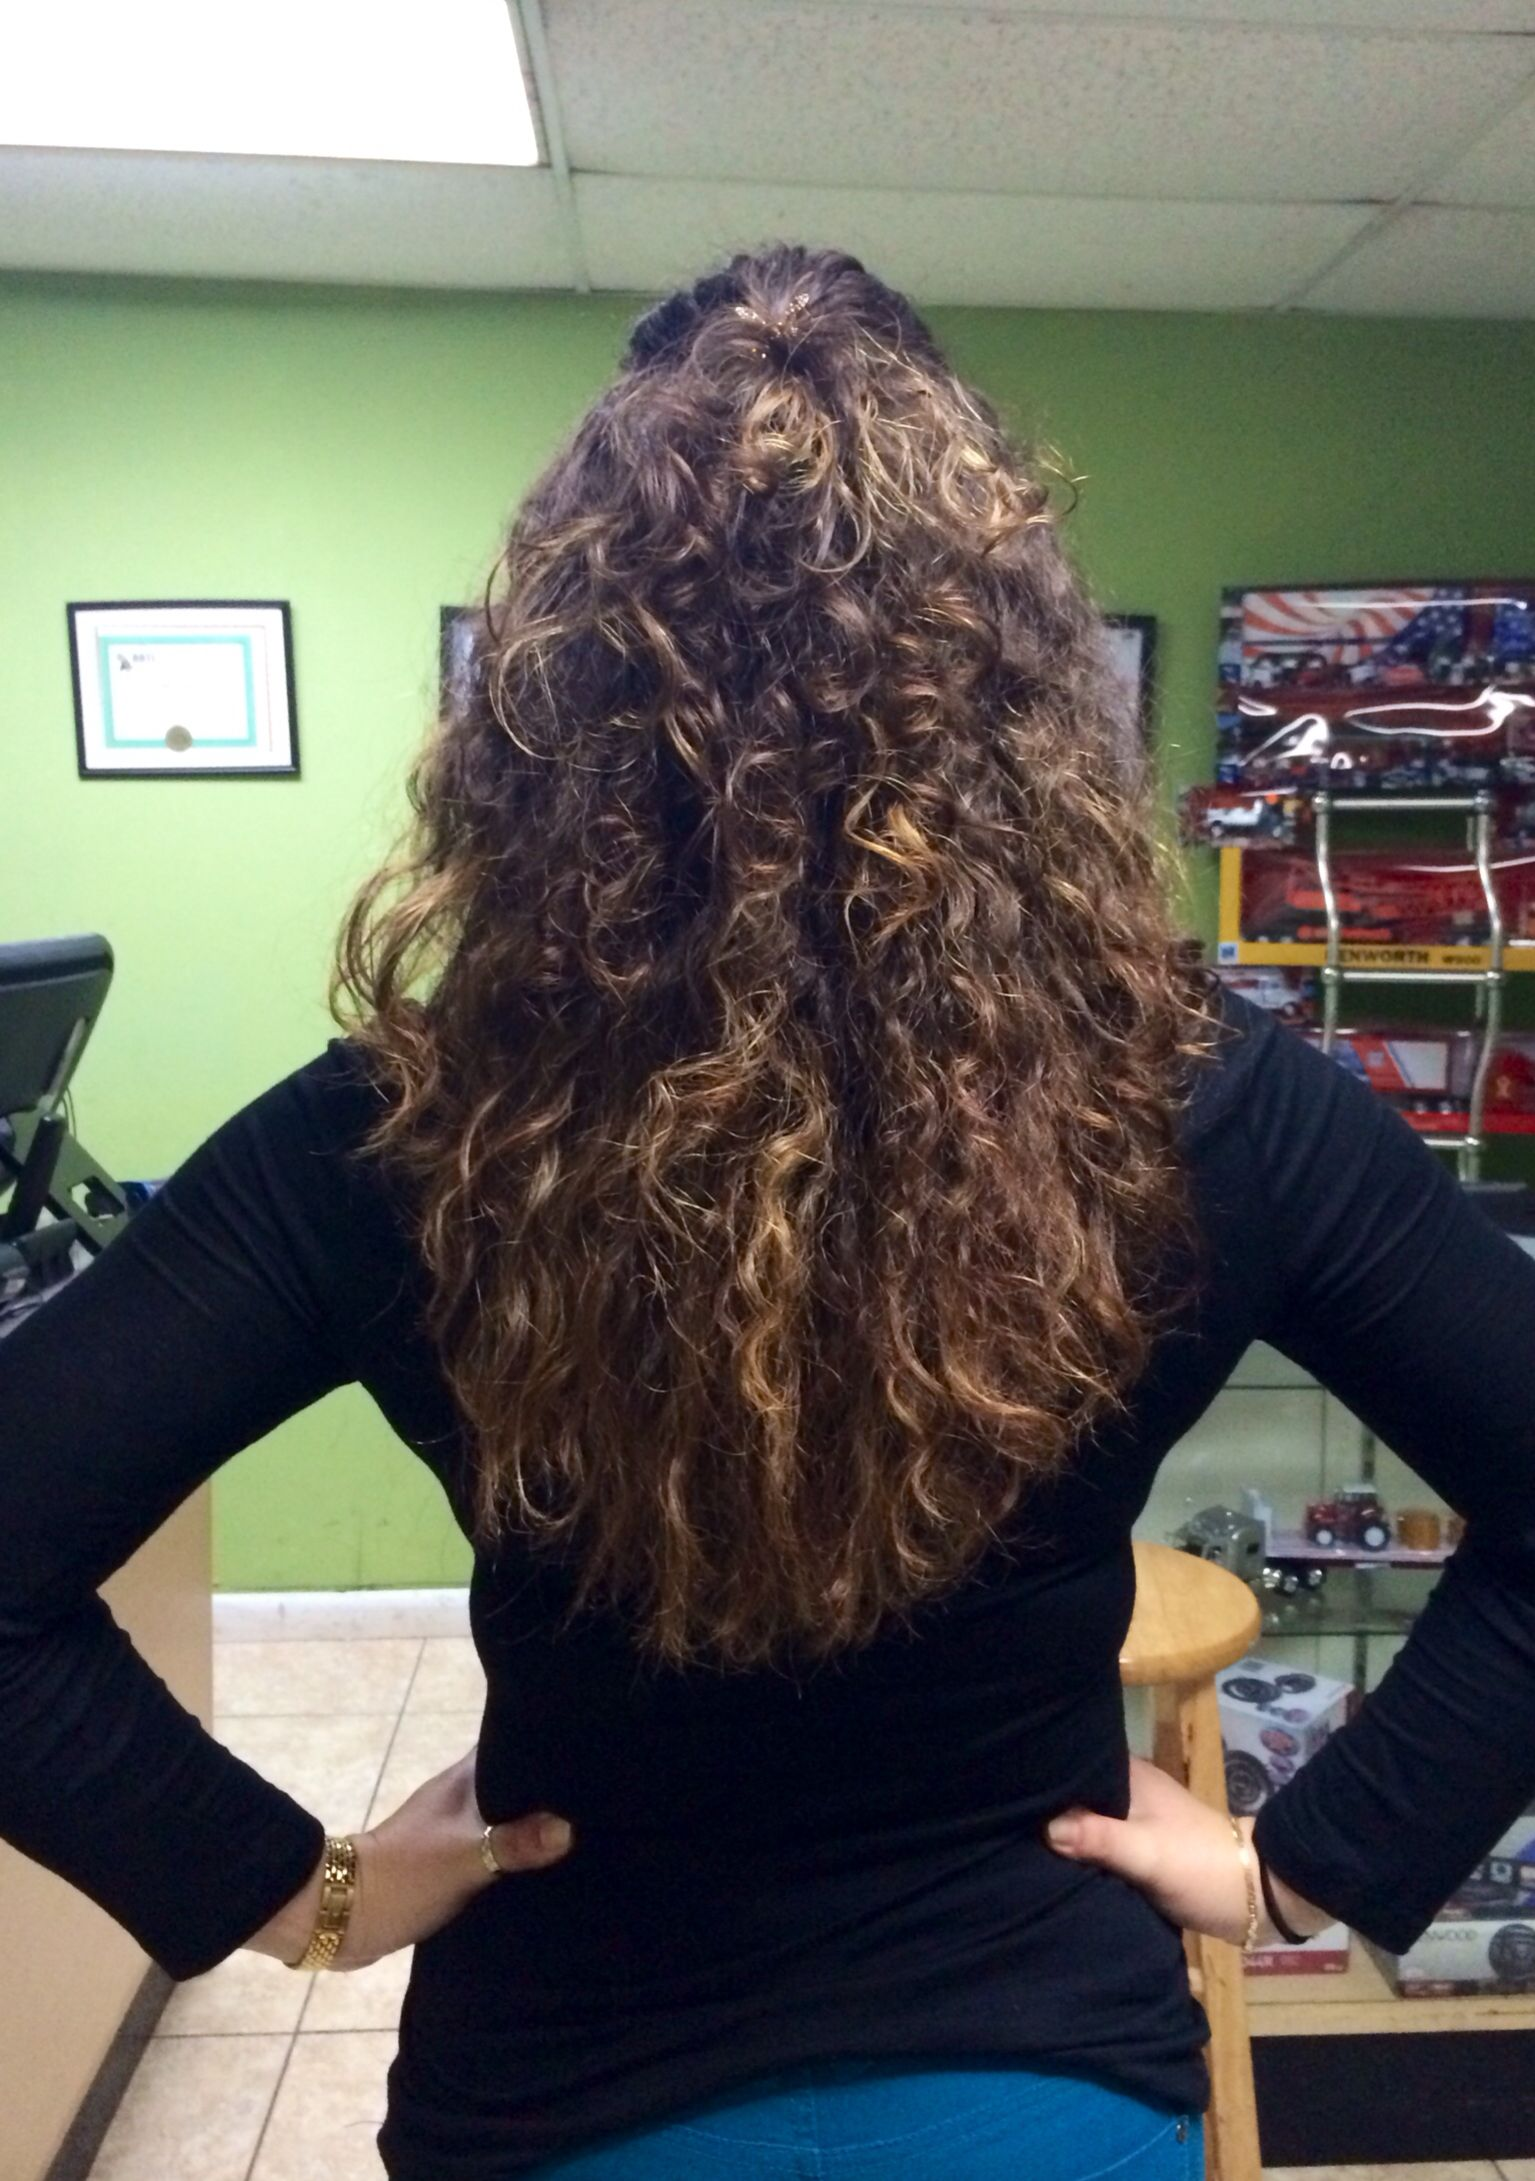 Ombr Curly Hair Natural Curly Hair Highlights 2014 Pins By